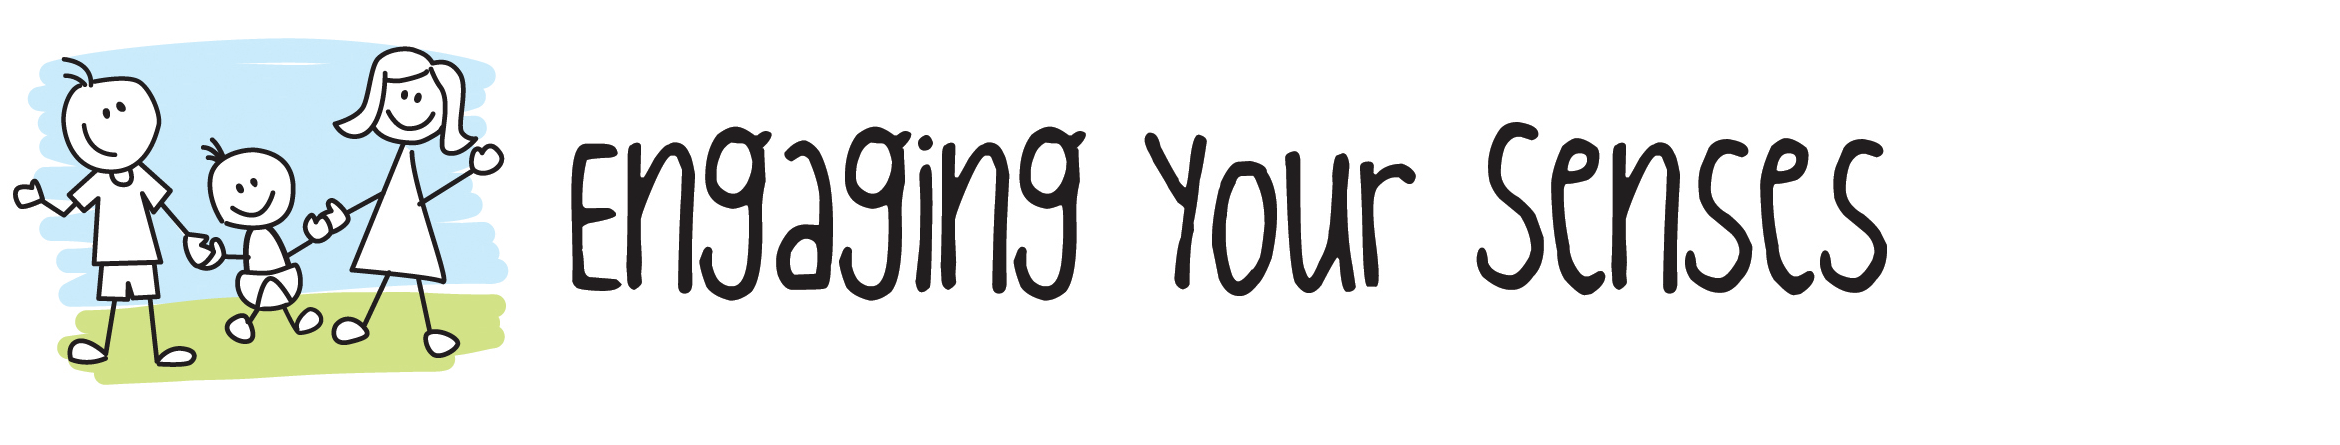 Engaging your Senses logo